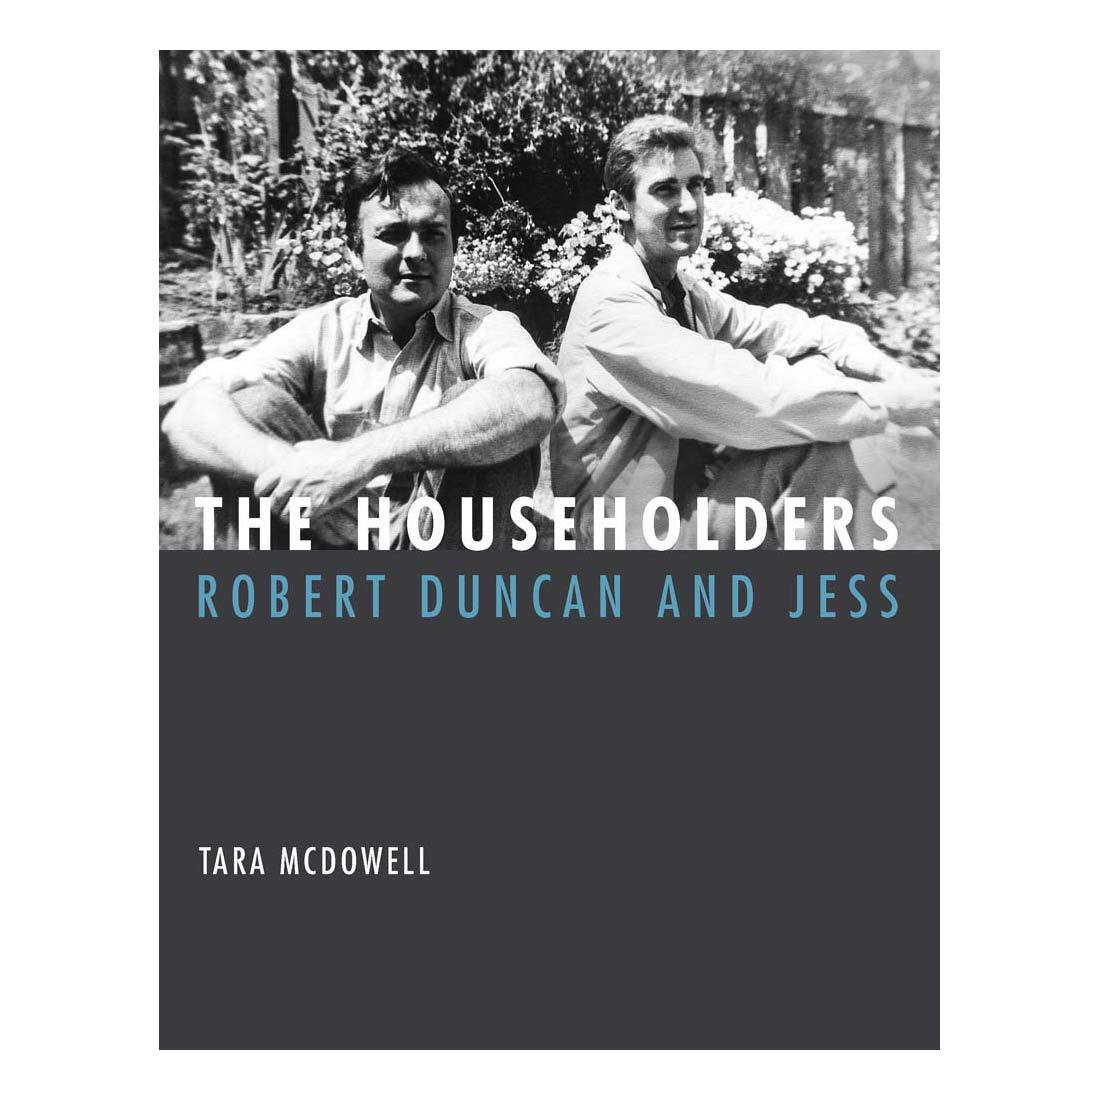 The Householders: Robert Duncan and Jess